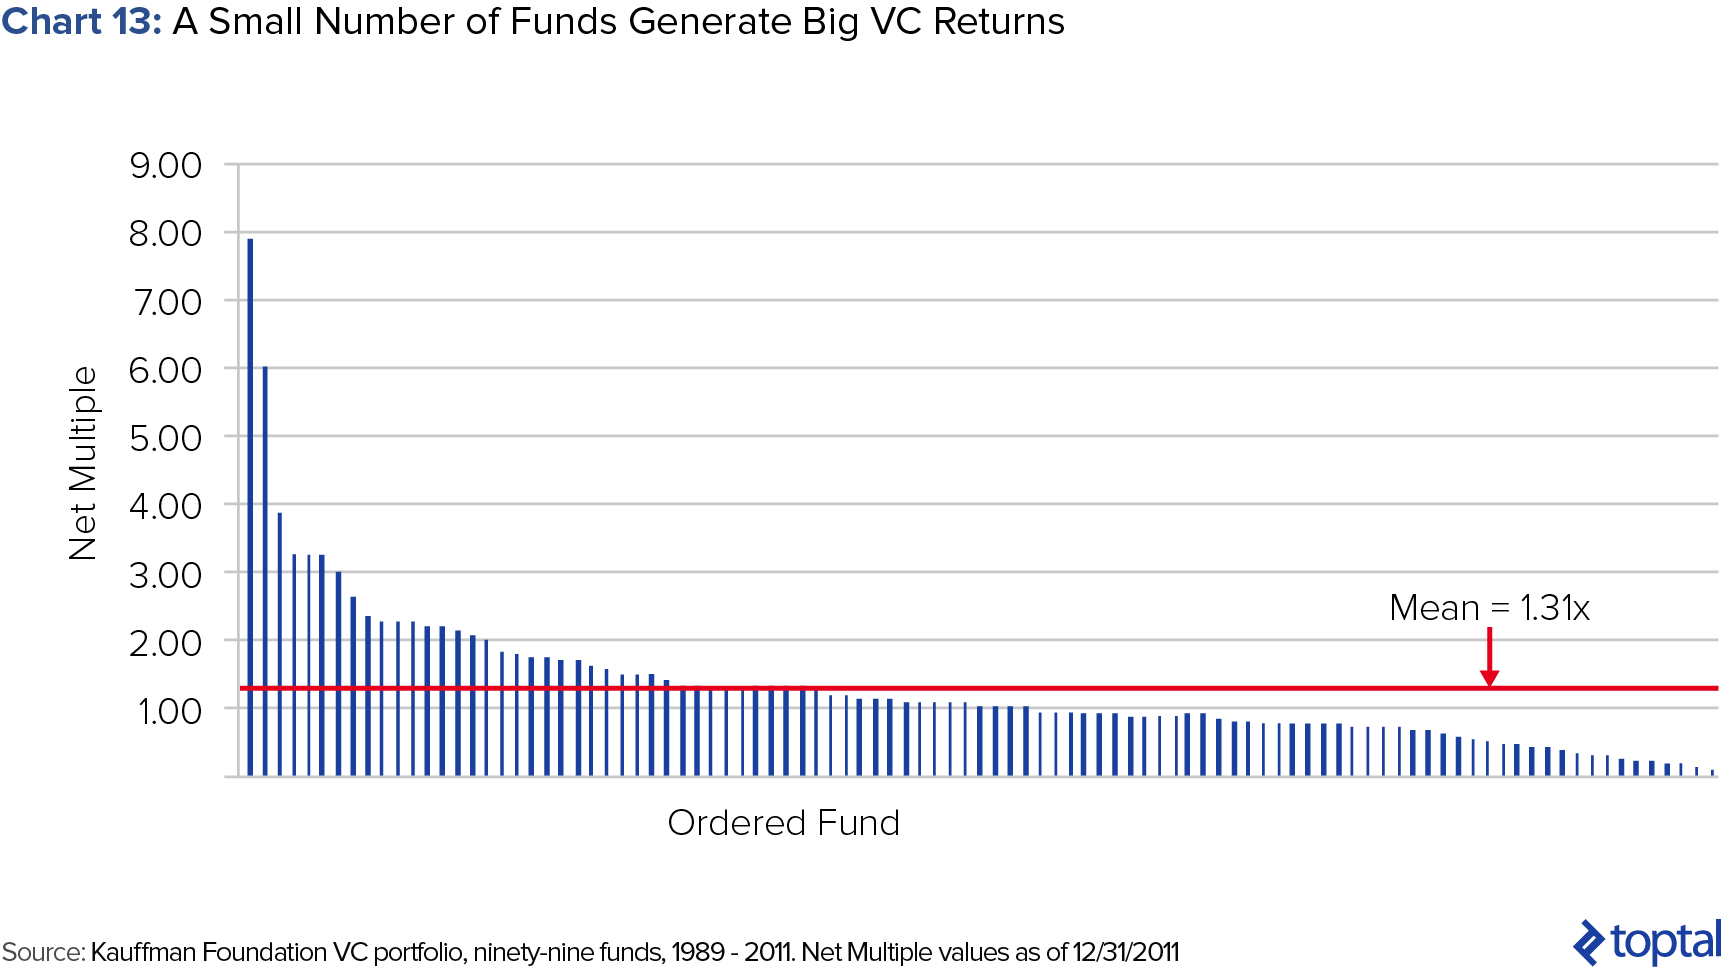 Chart 13: A Small Number of Funds Generate Big VC Returns